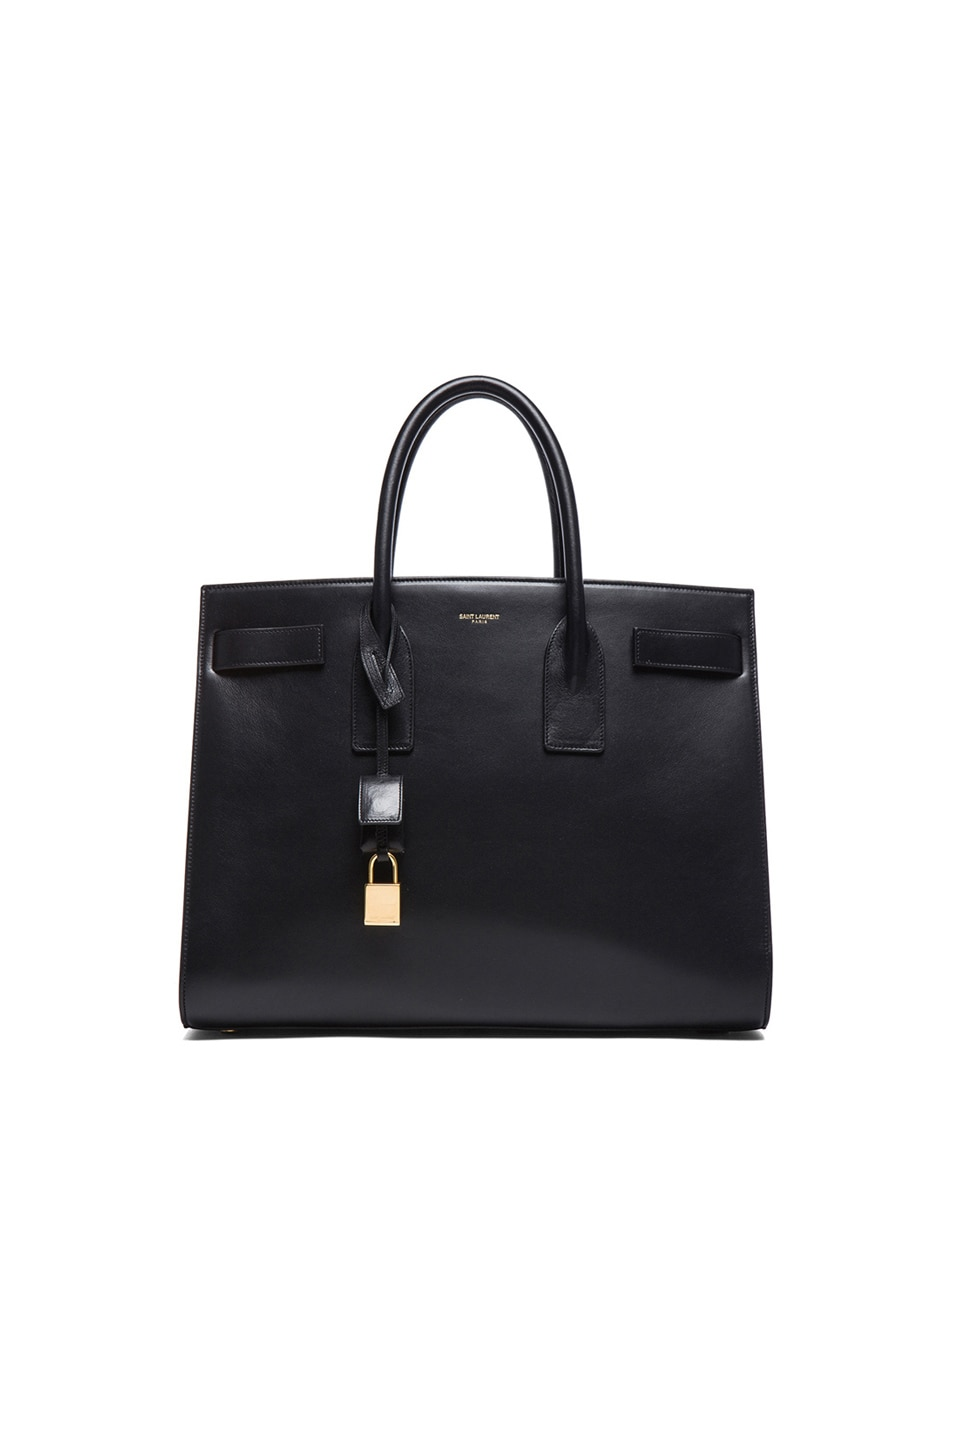 Image 1 of Saint Laurent Large Sac De Jour Carryall Bag in Black